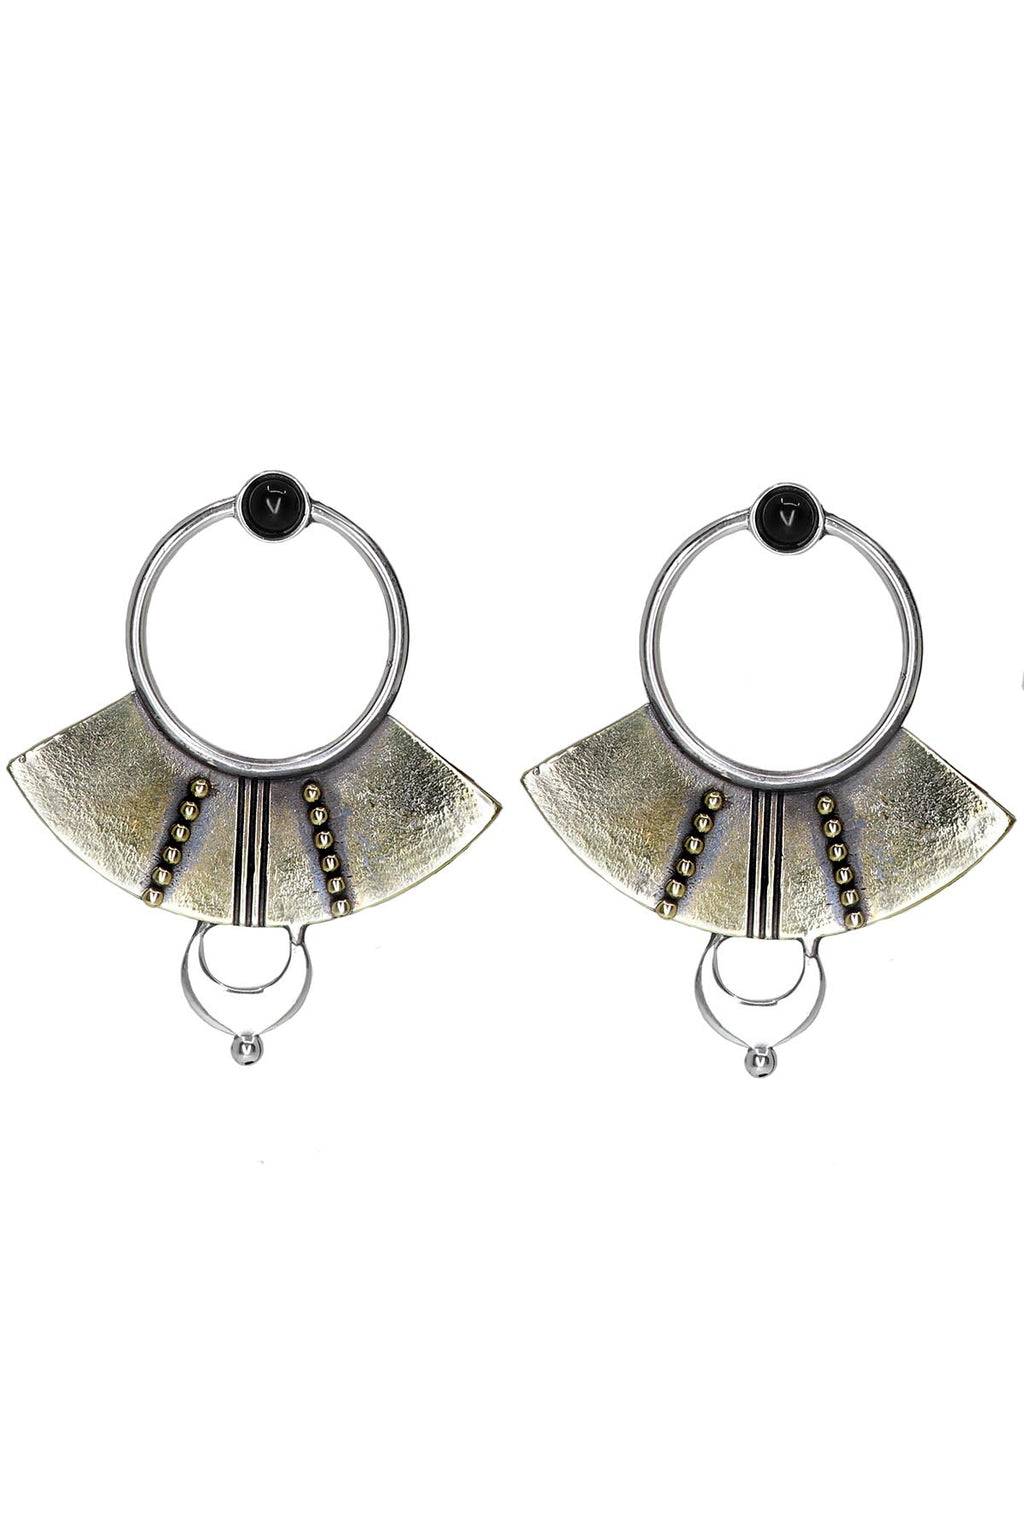 Orbit Earrings - Onyx - The Bohemian Corner